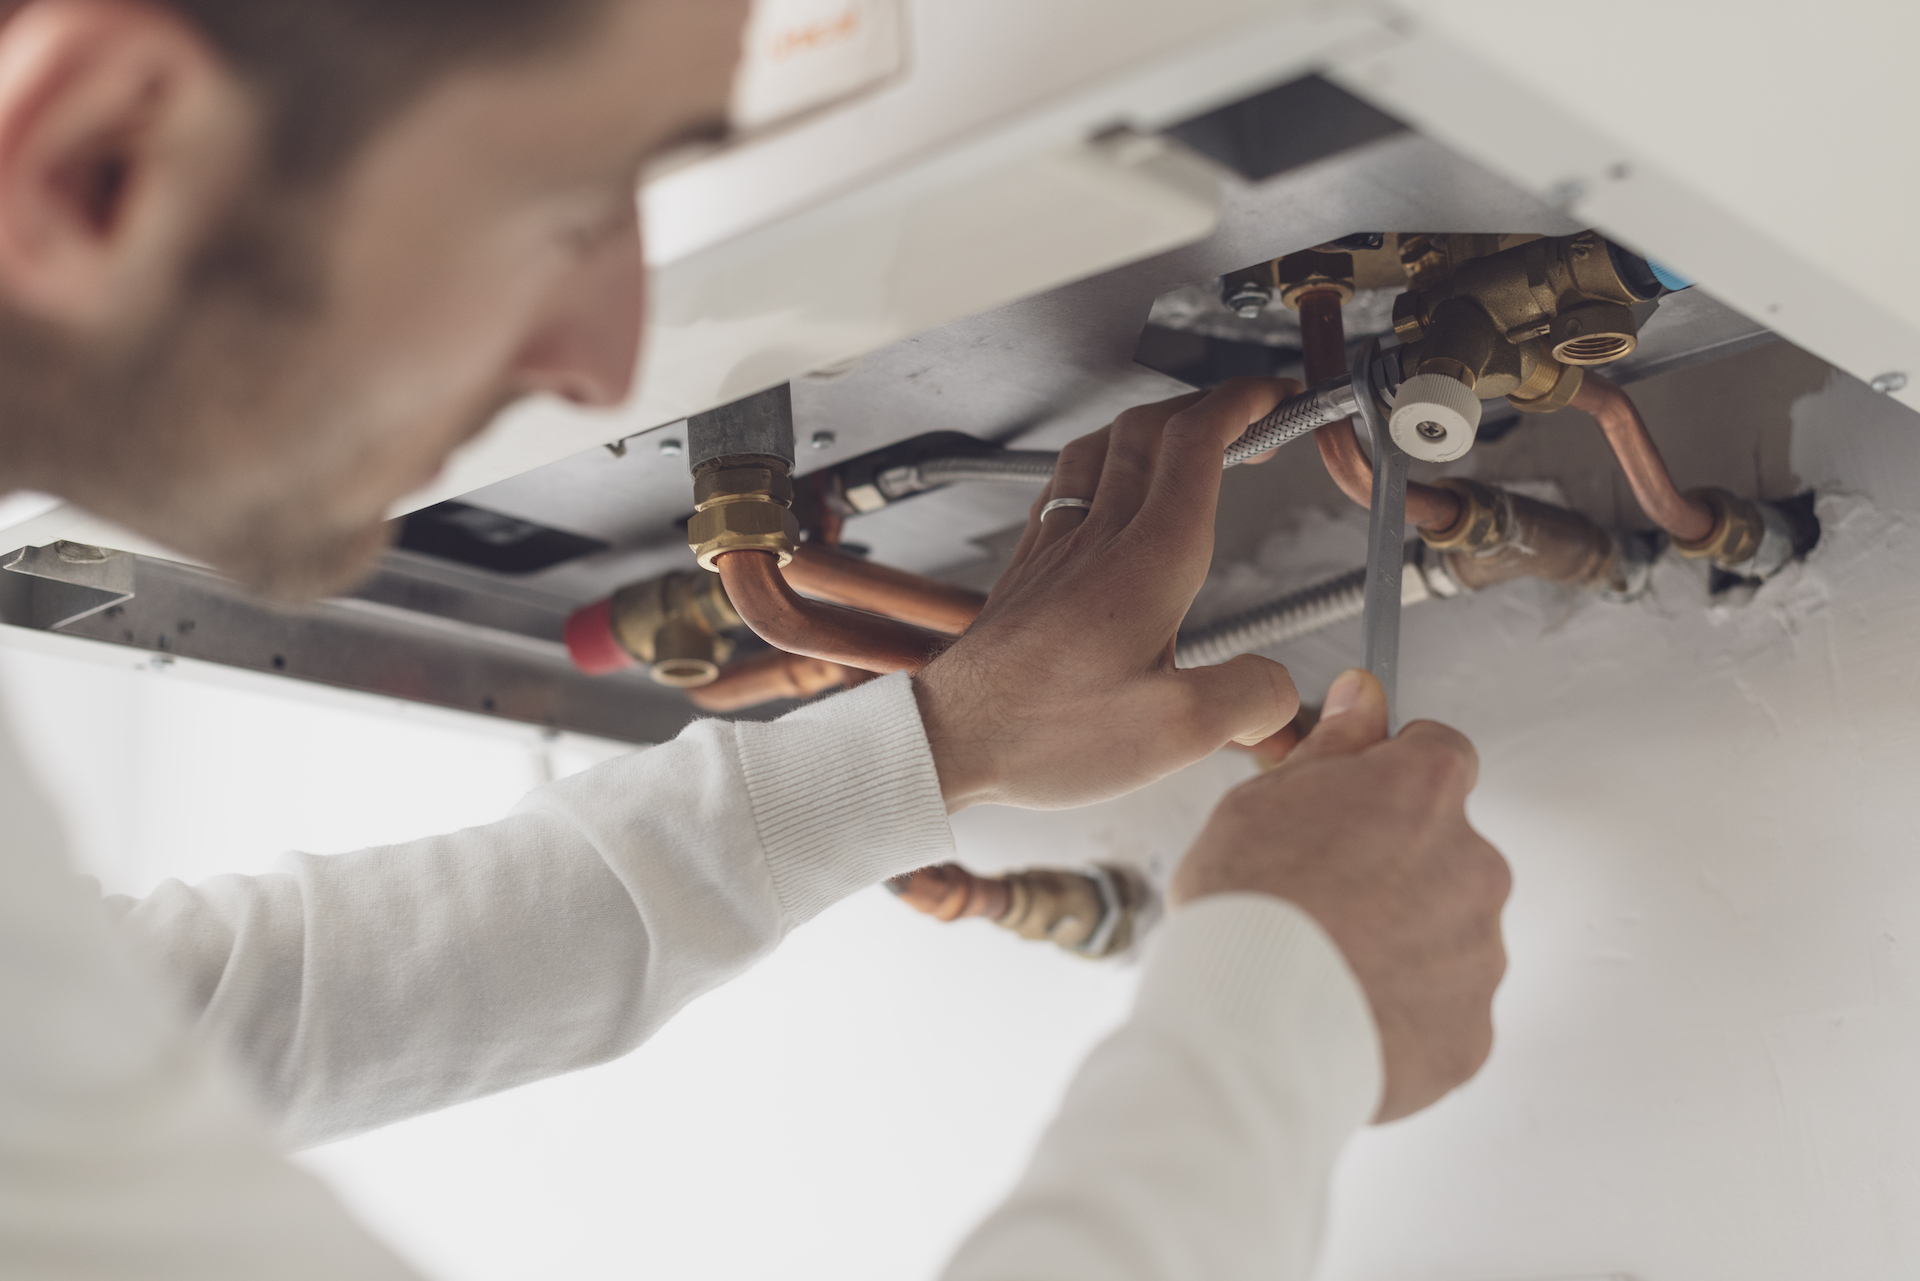 Plumber working on a hot water system